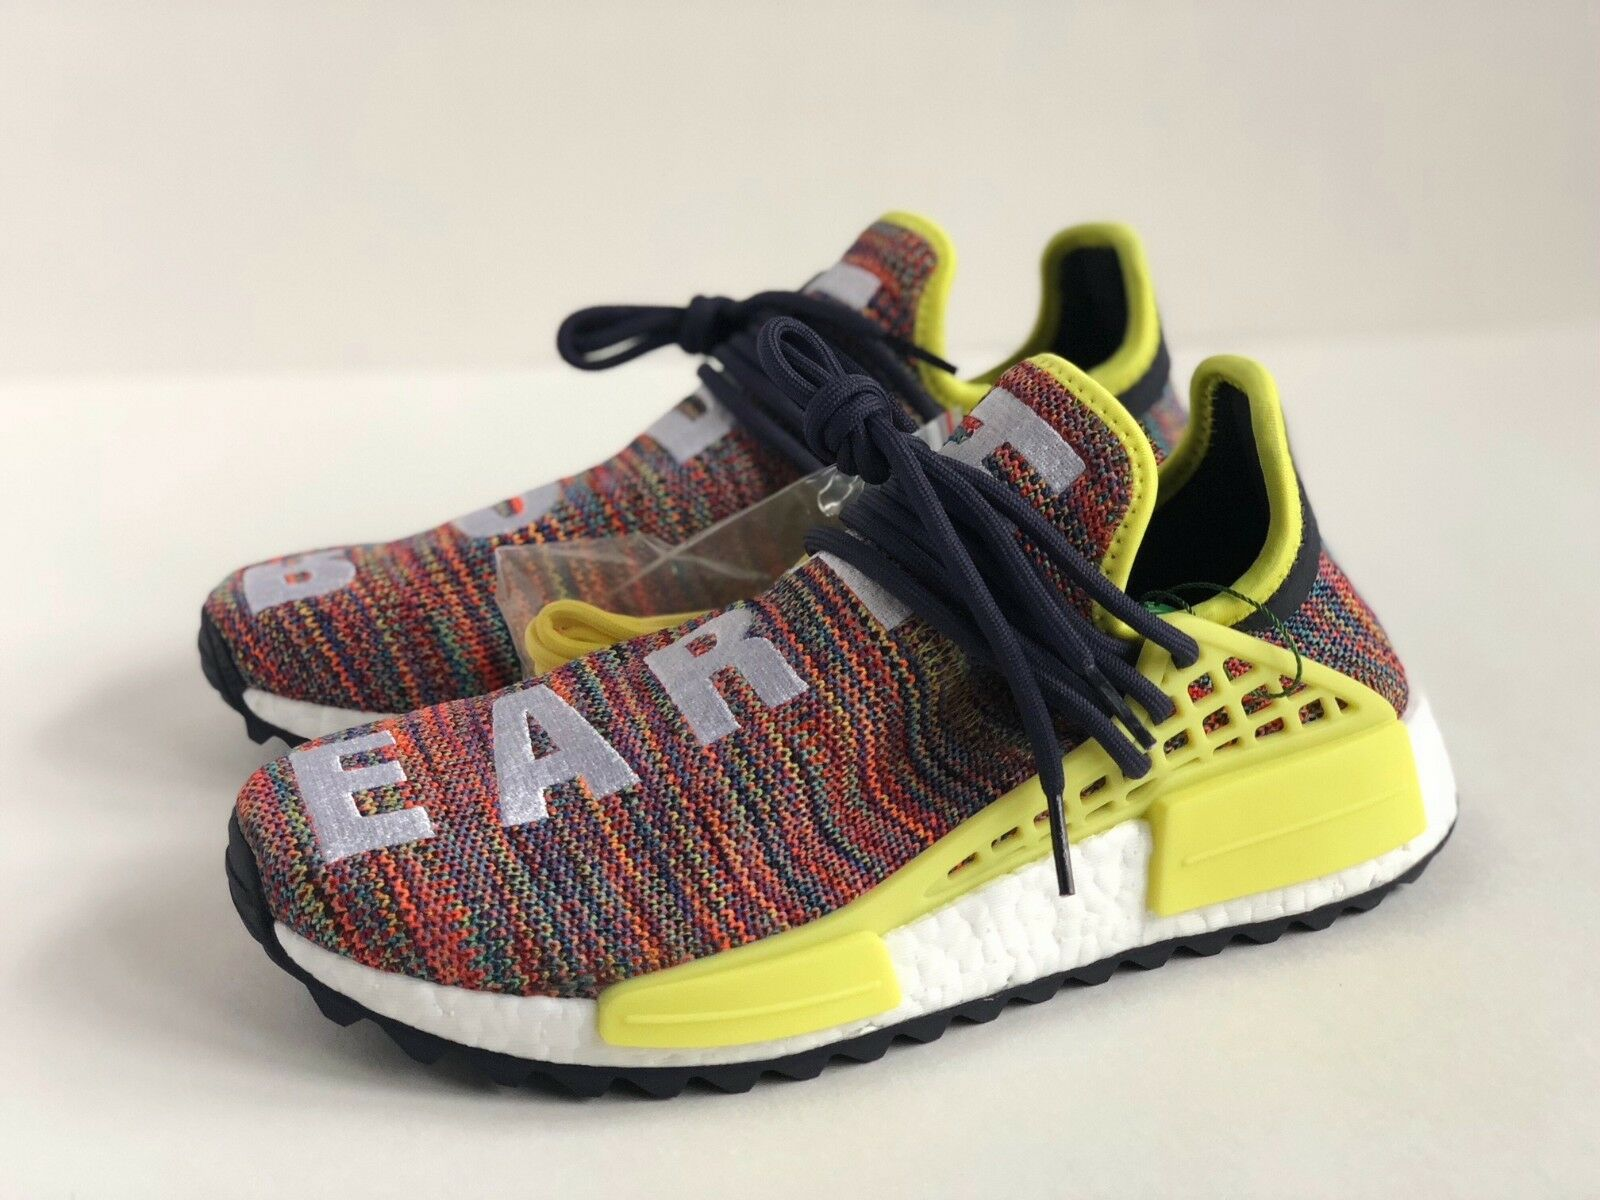 ADIDAS HU NMD MULTI [SZ 9] PHARRELL RED blueE YELLOW HUMAN RACE TR TRAIL AC7360